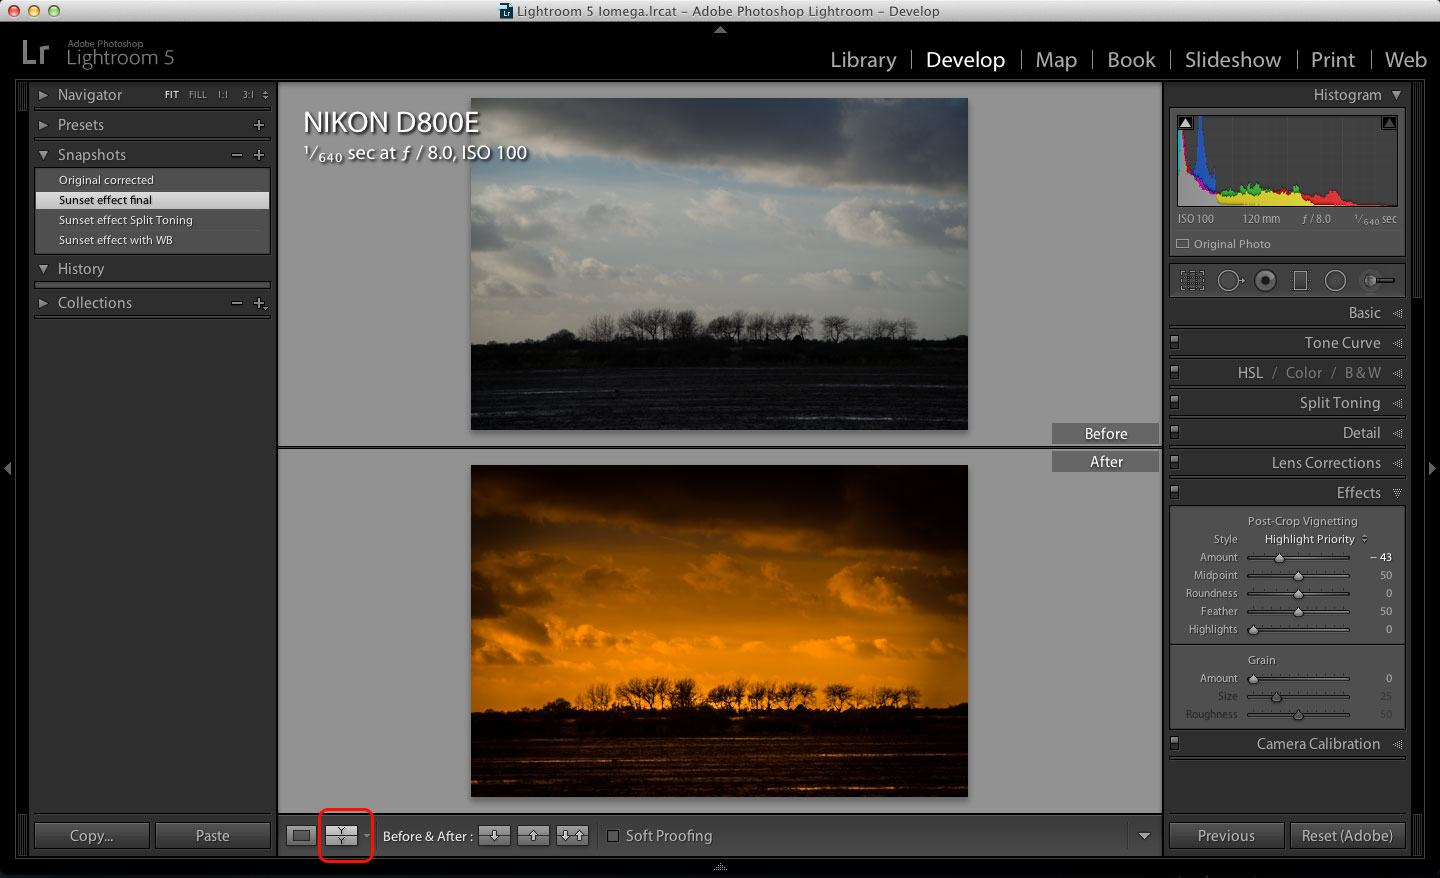 how to get rid of incadenct light in lightroom